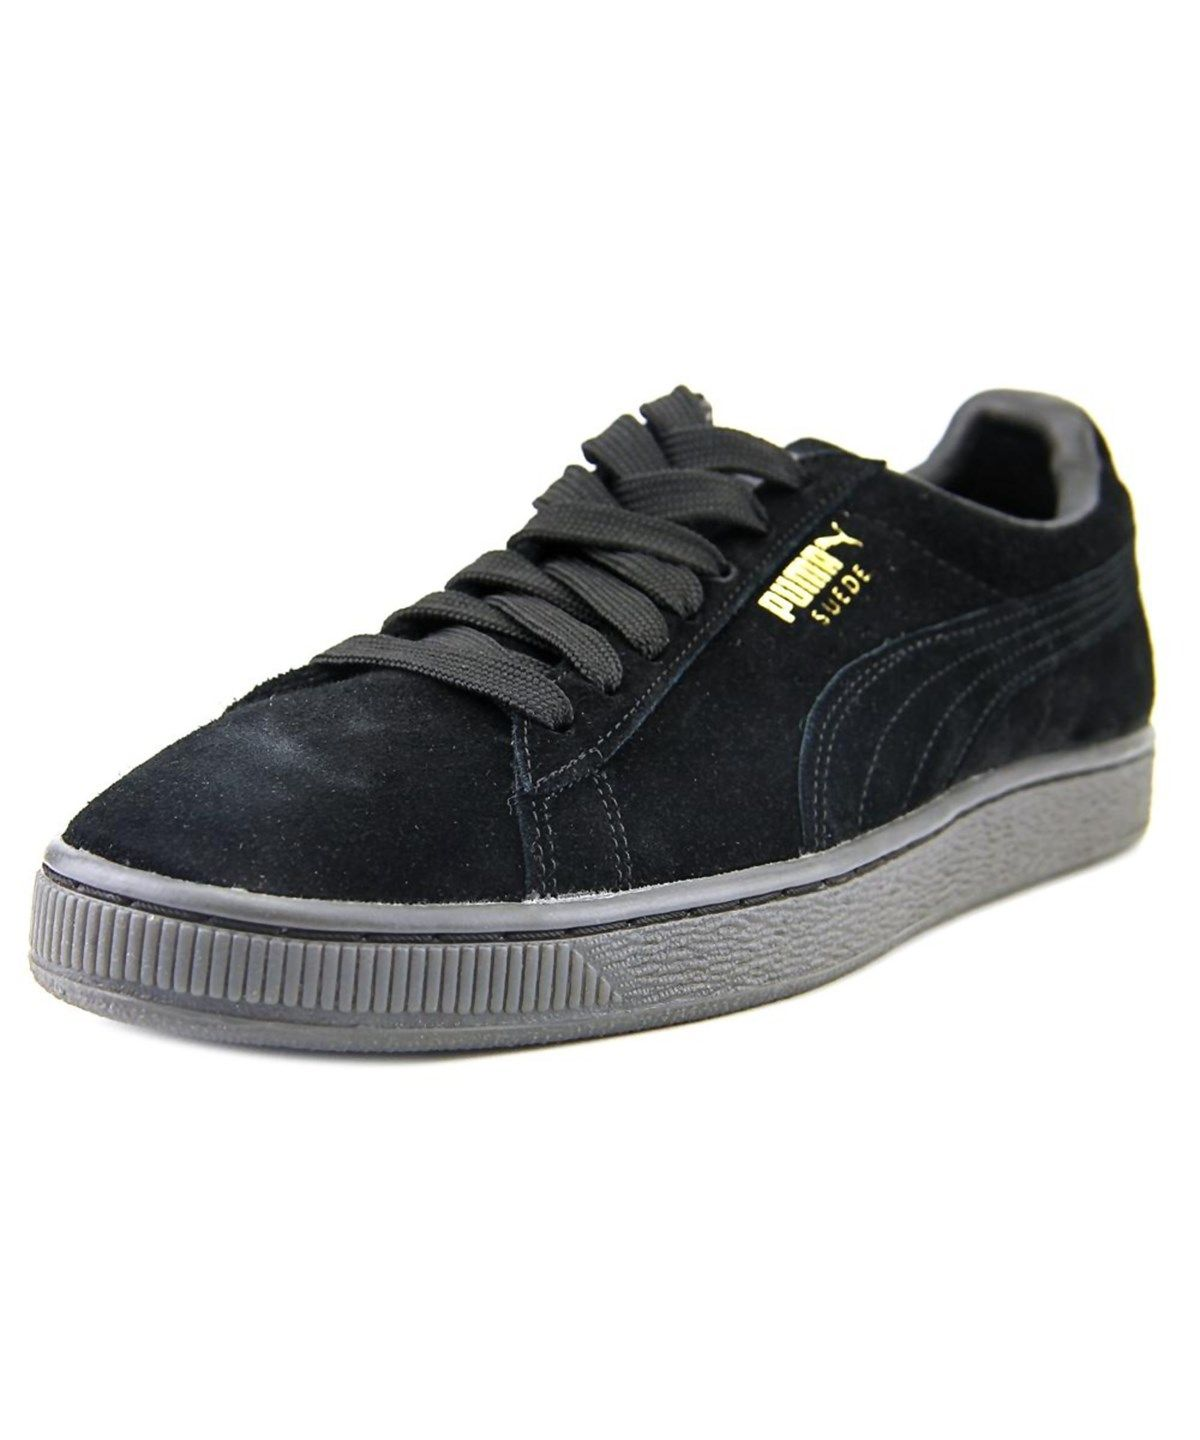 mens suede puma sneakers